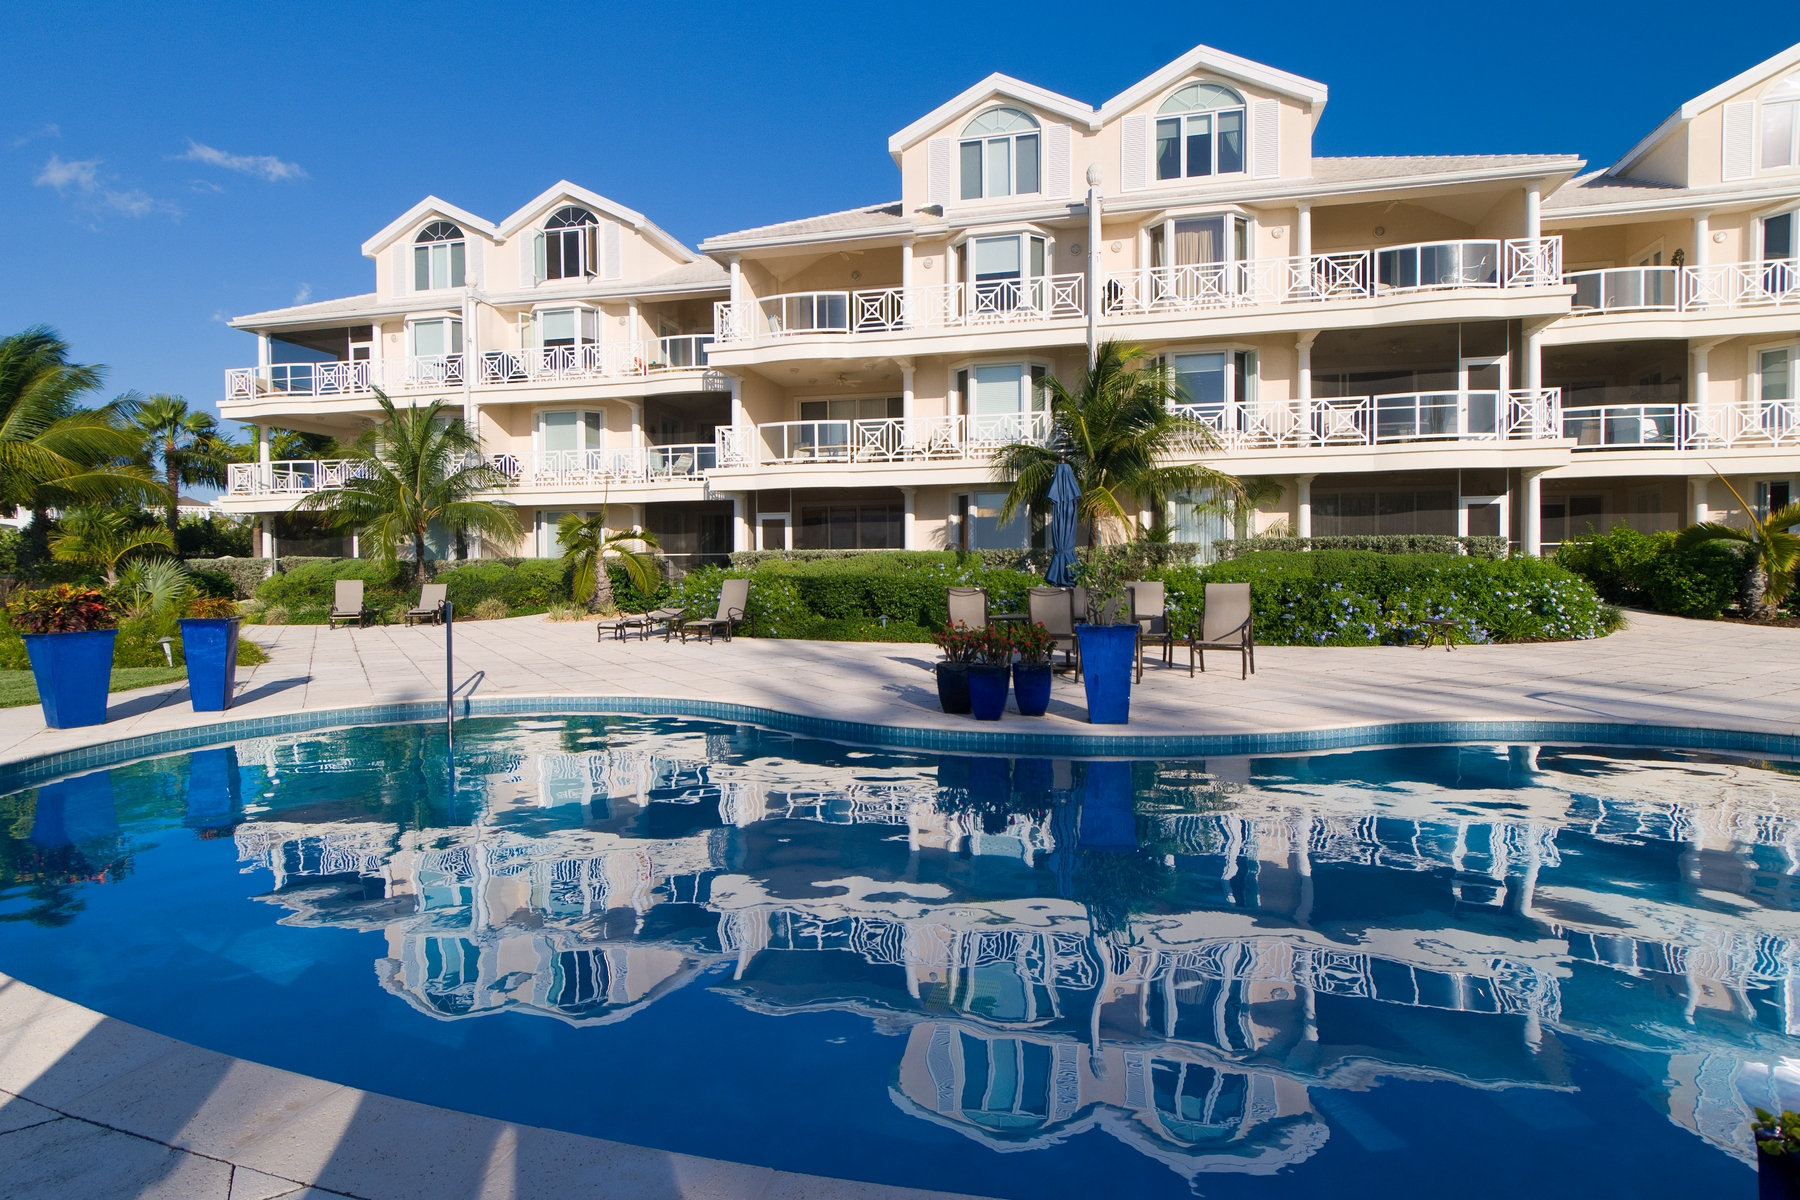 Condominium for Sale at The Grandview on Grace Bay - Suite 202 Grace Bay, Turks And Caicos Islands